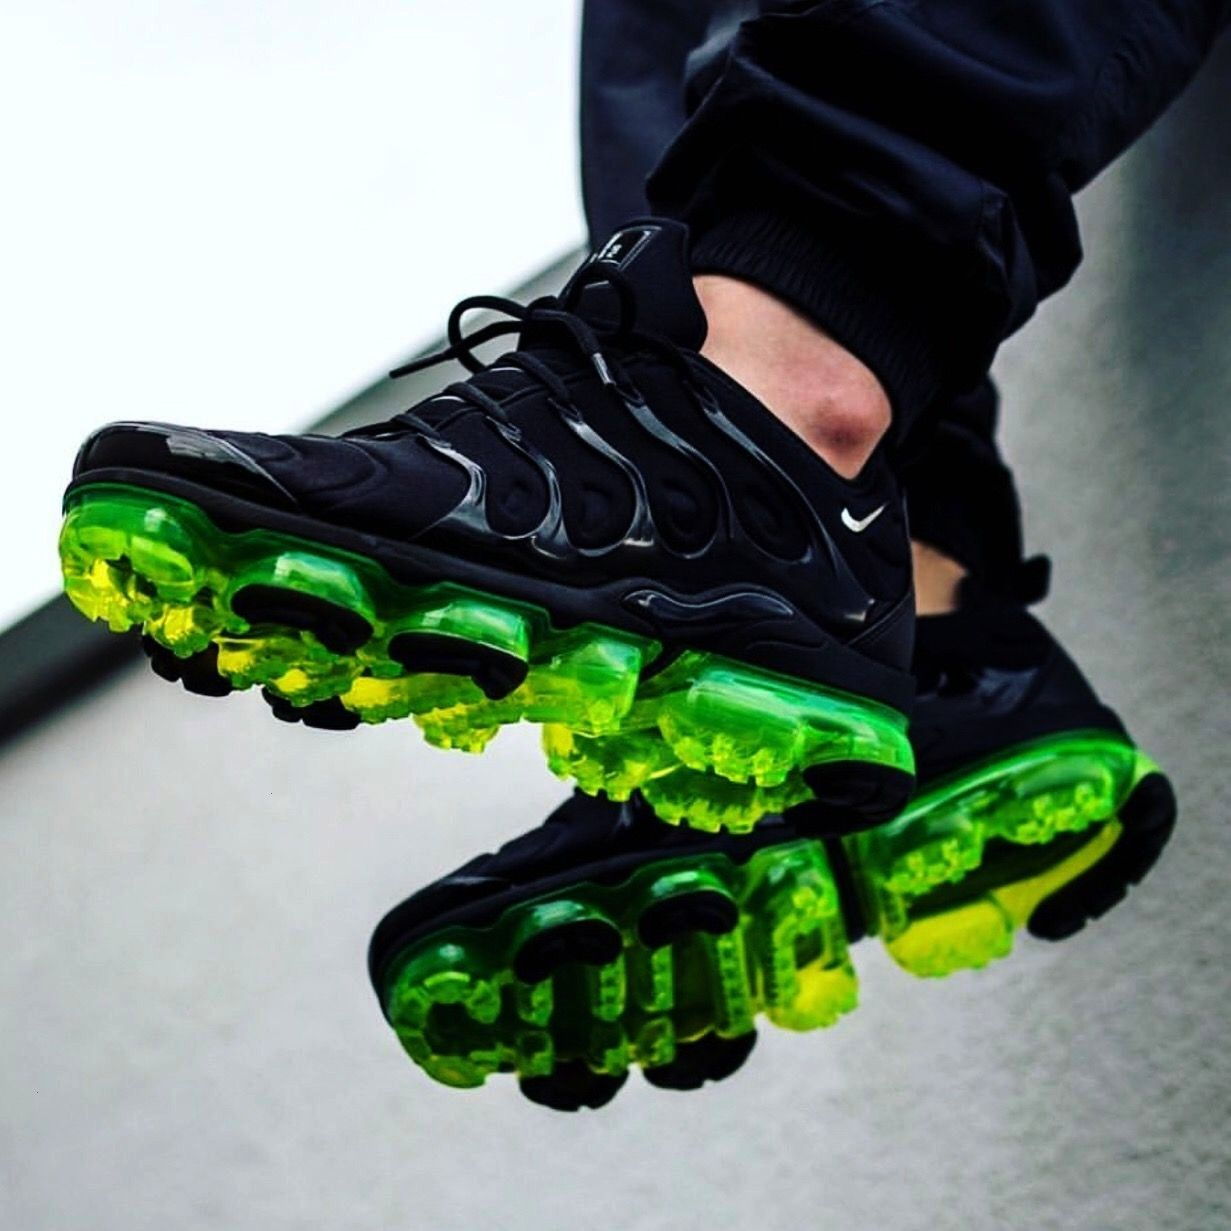 VaporMax Plus Mens Shoe Air VaporMax Plus Mens Shoe  Left or right   Click the link in our bio to shop for your favorite Jordans and Yeezys   Photo by justwincustoms Nike...